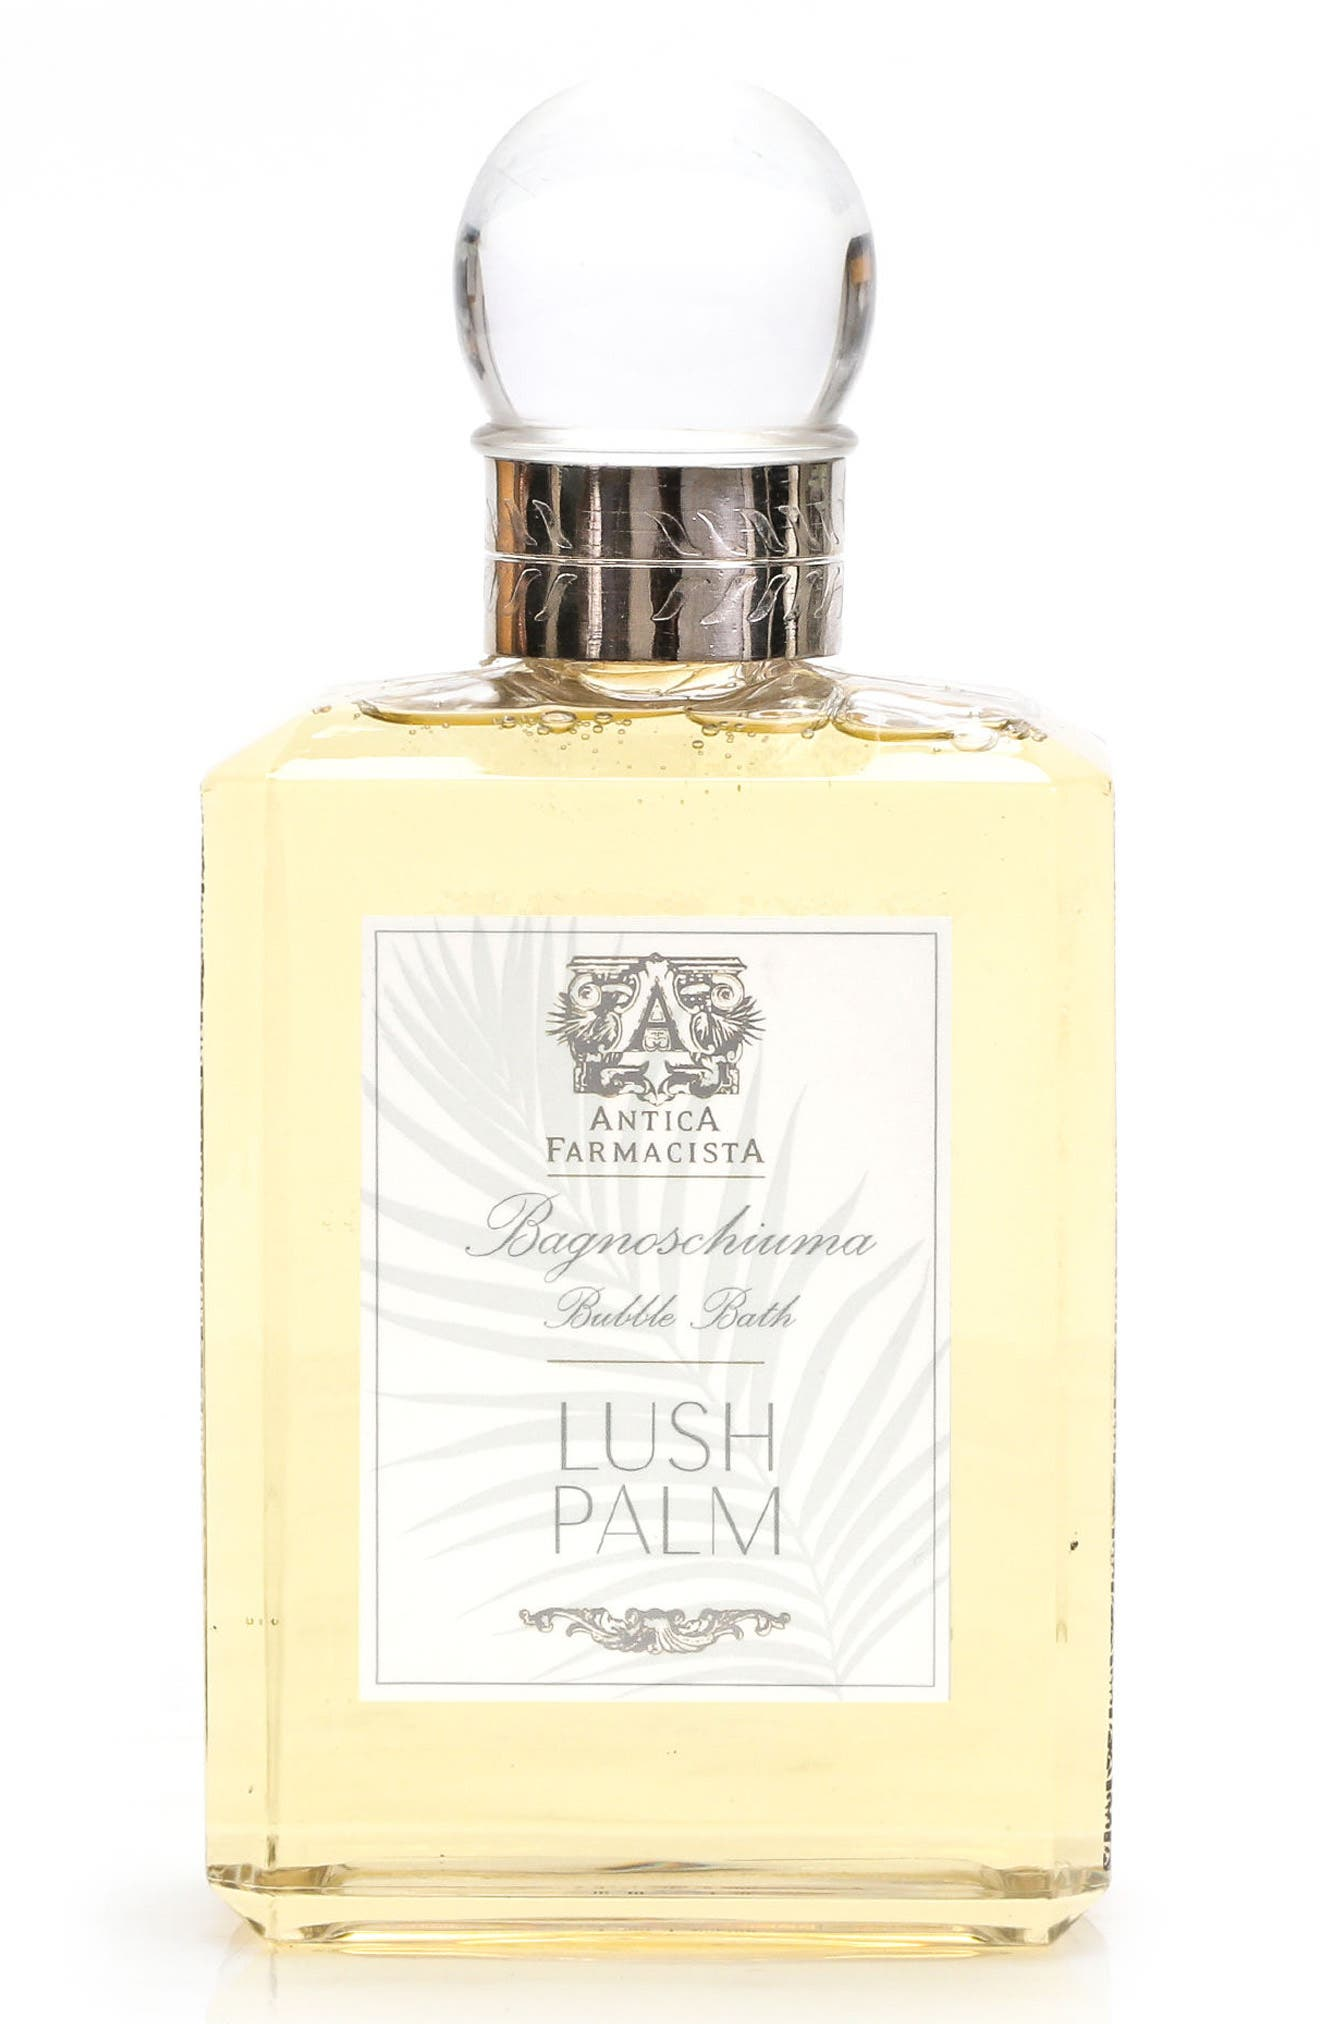 Antica Farmacista Lush Palm Bubble Bath